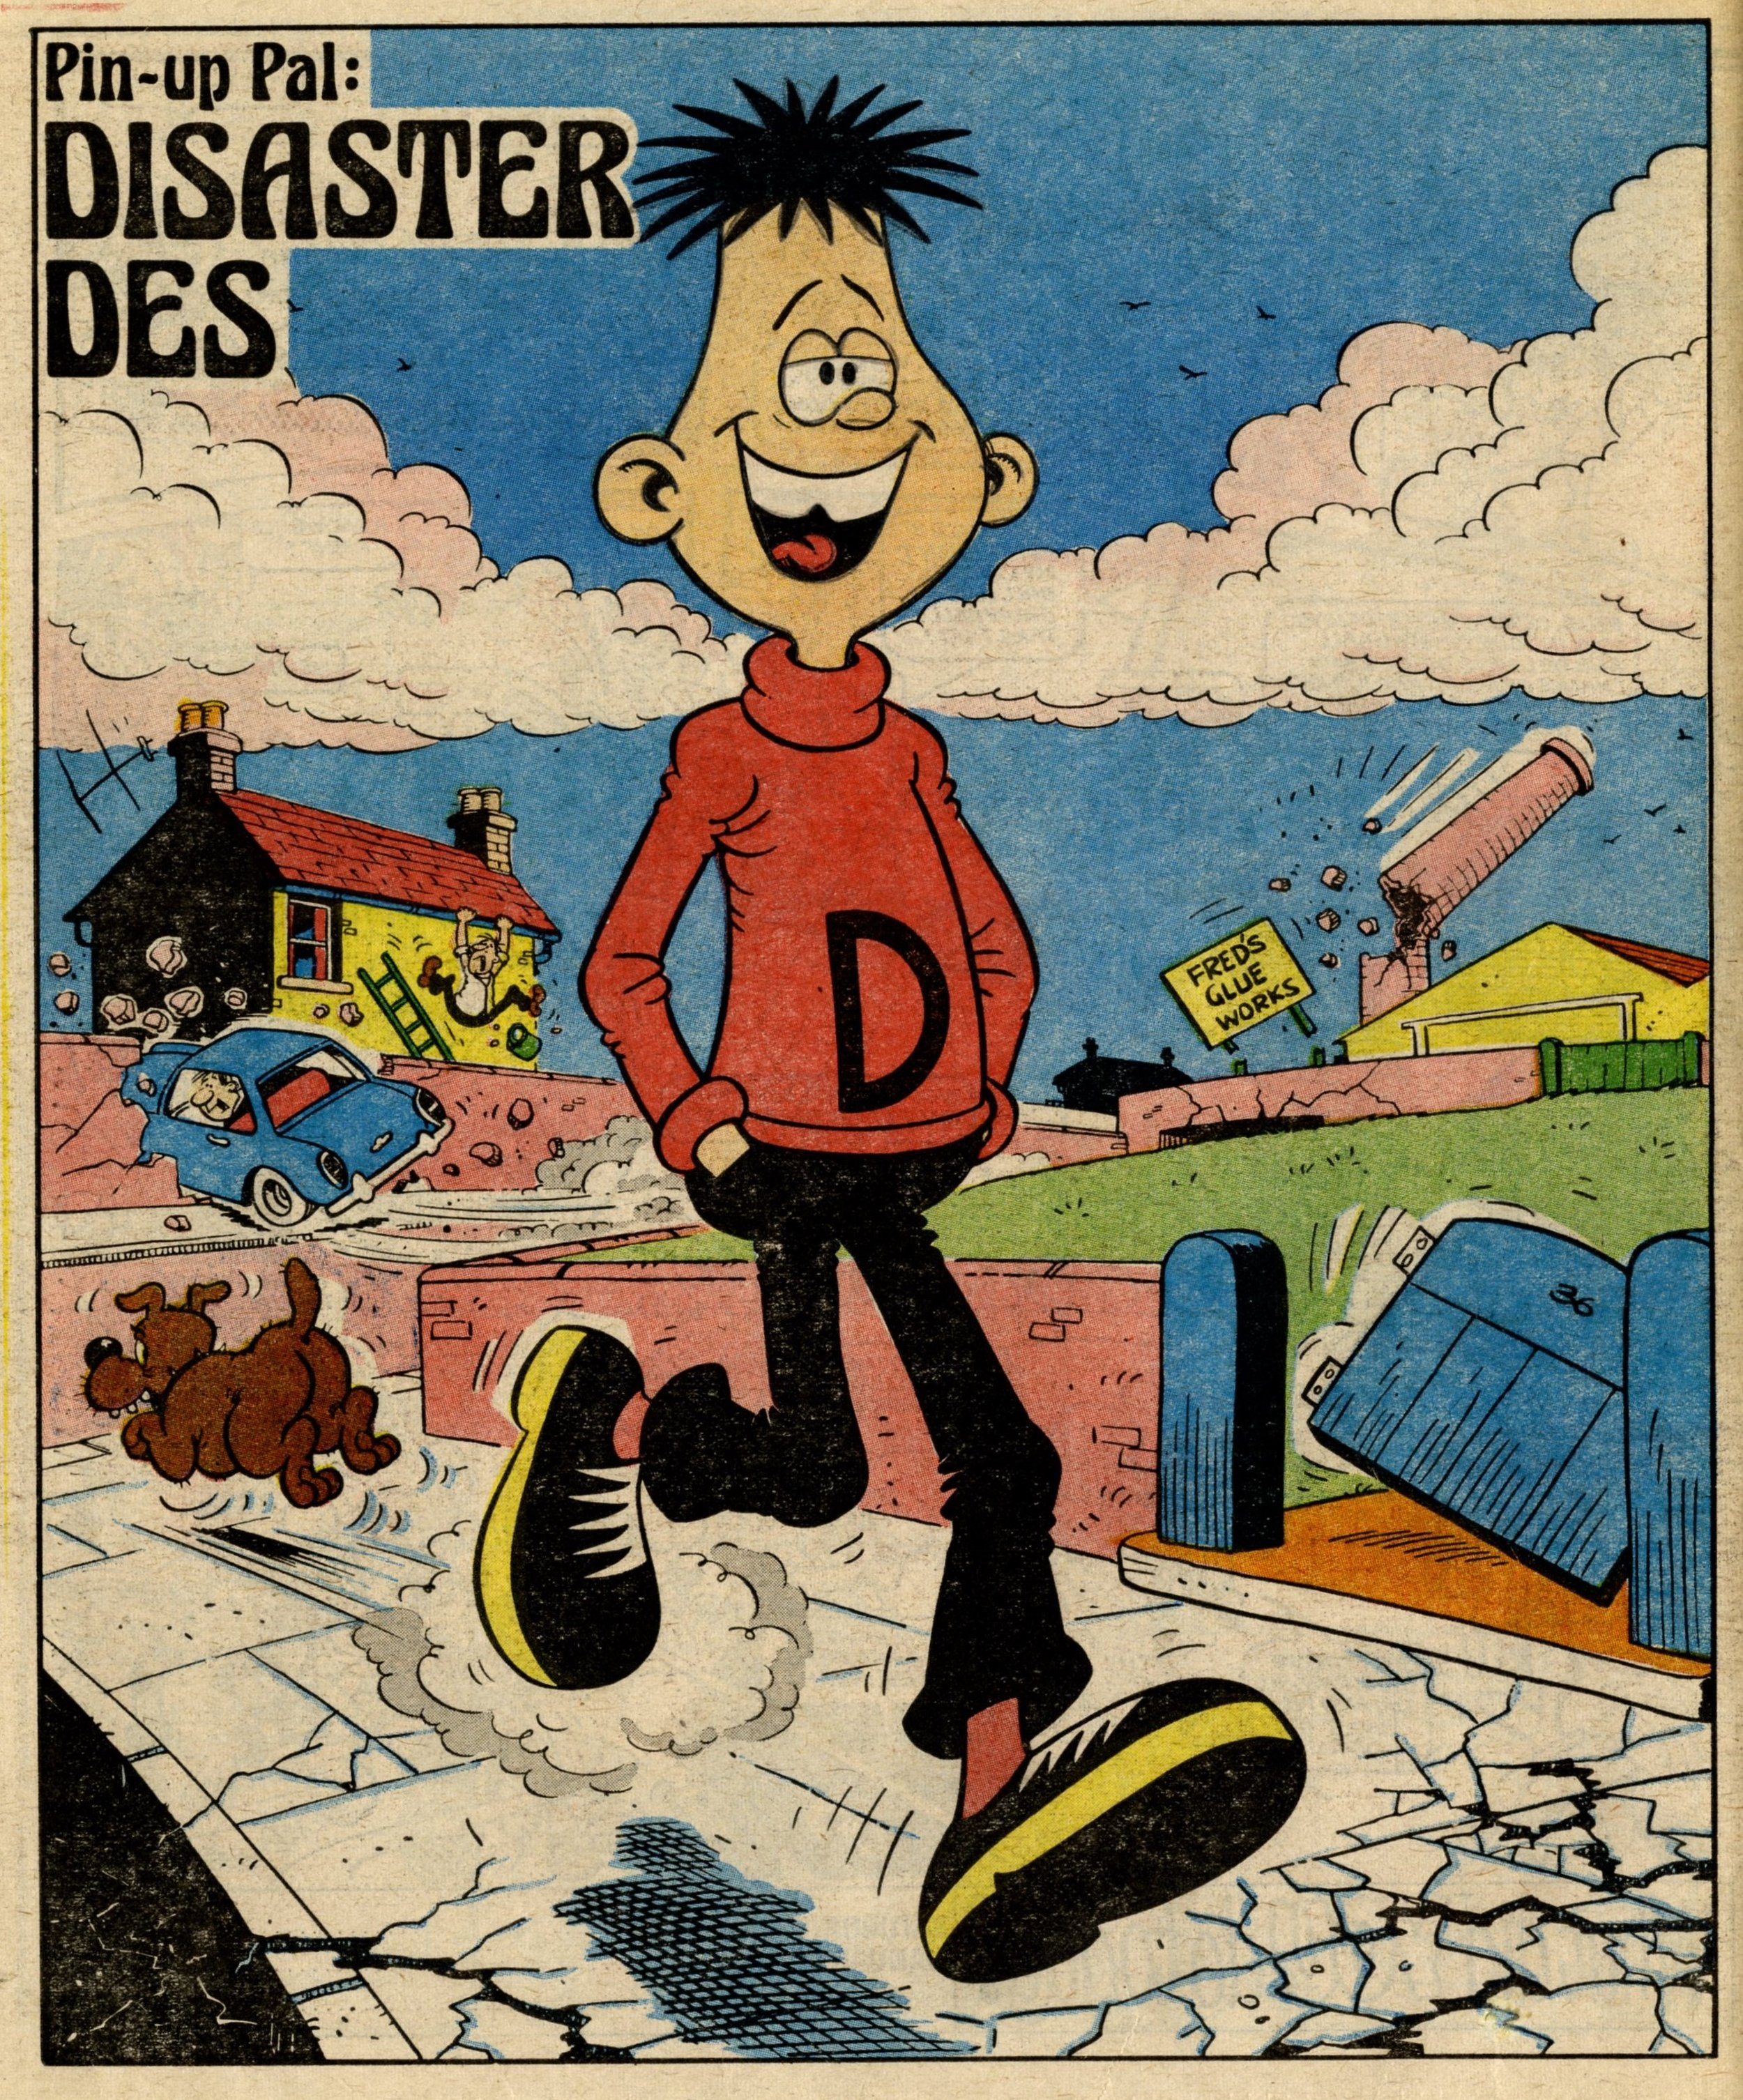 Pin-up Pal: Disaster Des (artist Mike Lacey), 20 January 1979